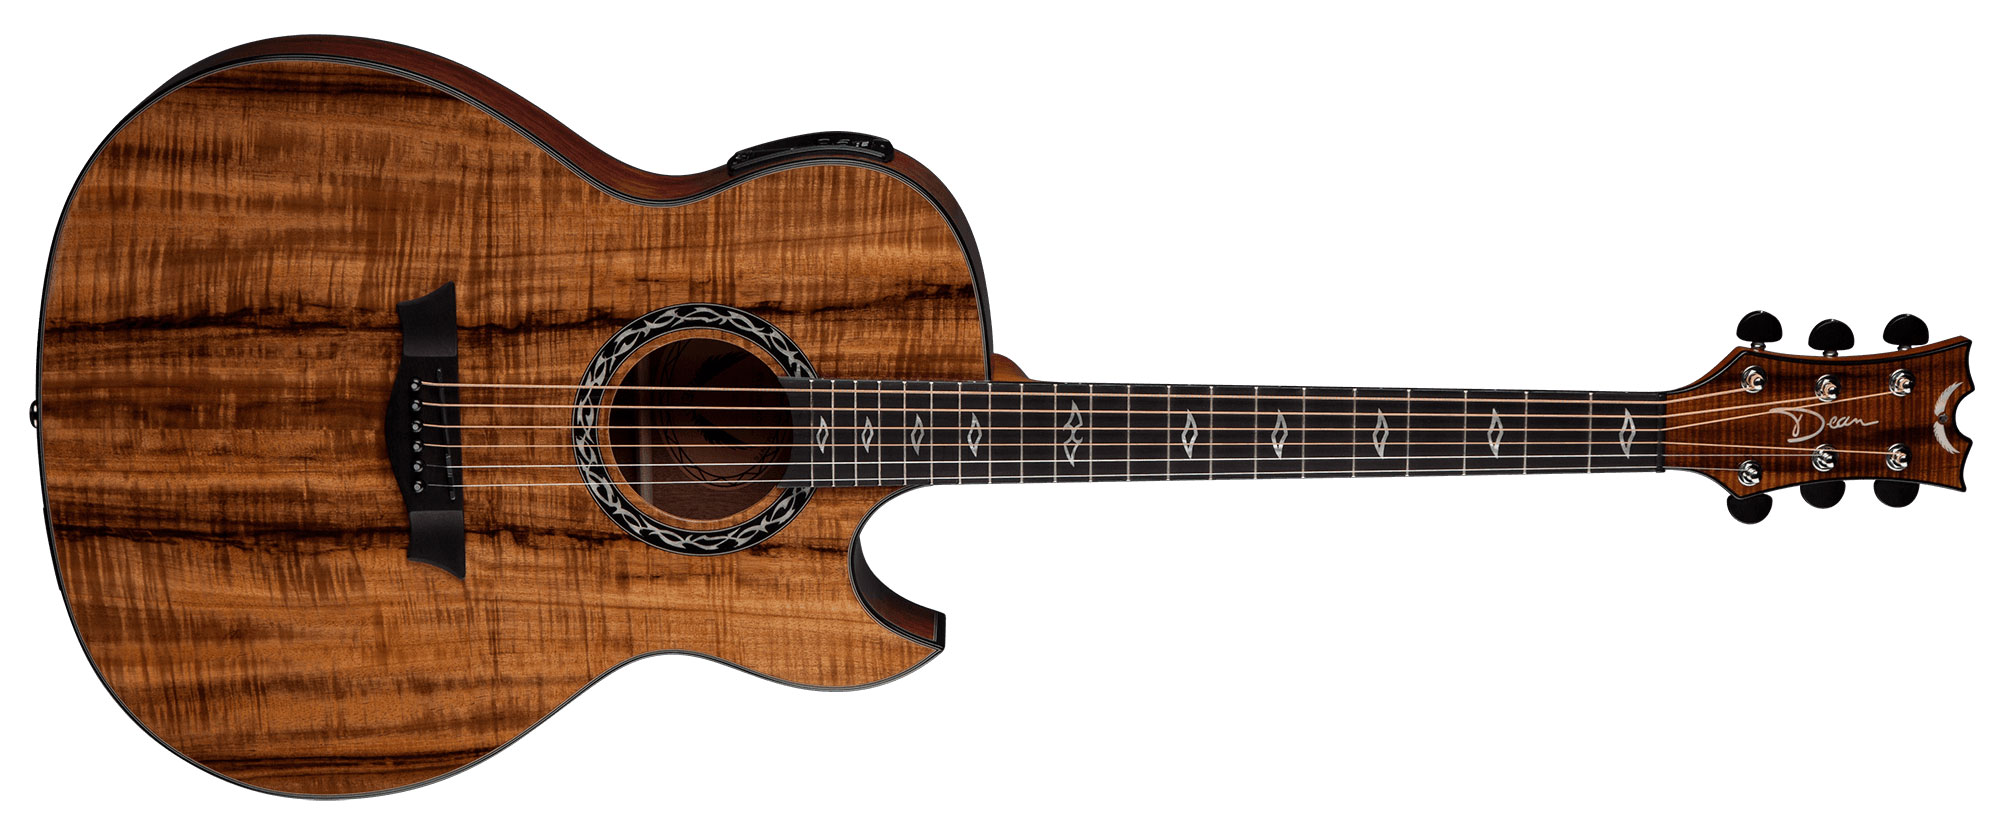 dean exhibition koa 6 string acoustic electric guitar w aphex exciter gloss natural ex koa. Black Bedroom Furniture Sets. Home Design Ideas